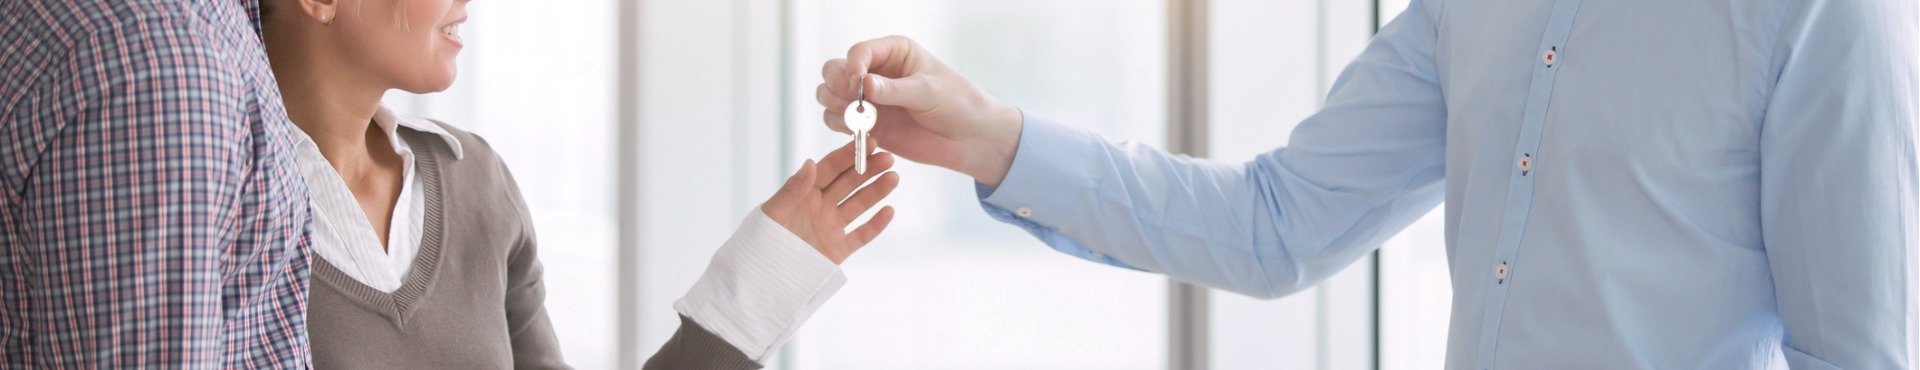 Handing over rental keys | Shine Lawyers